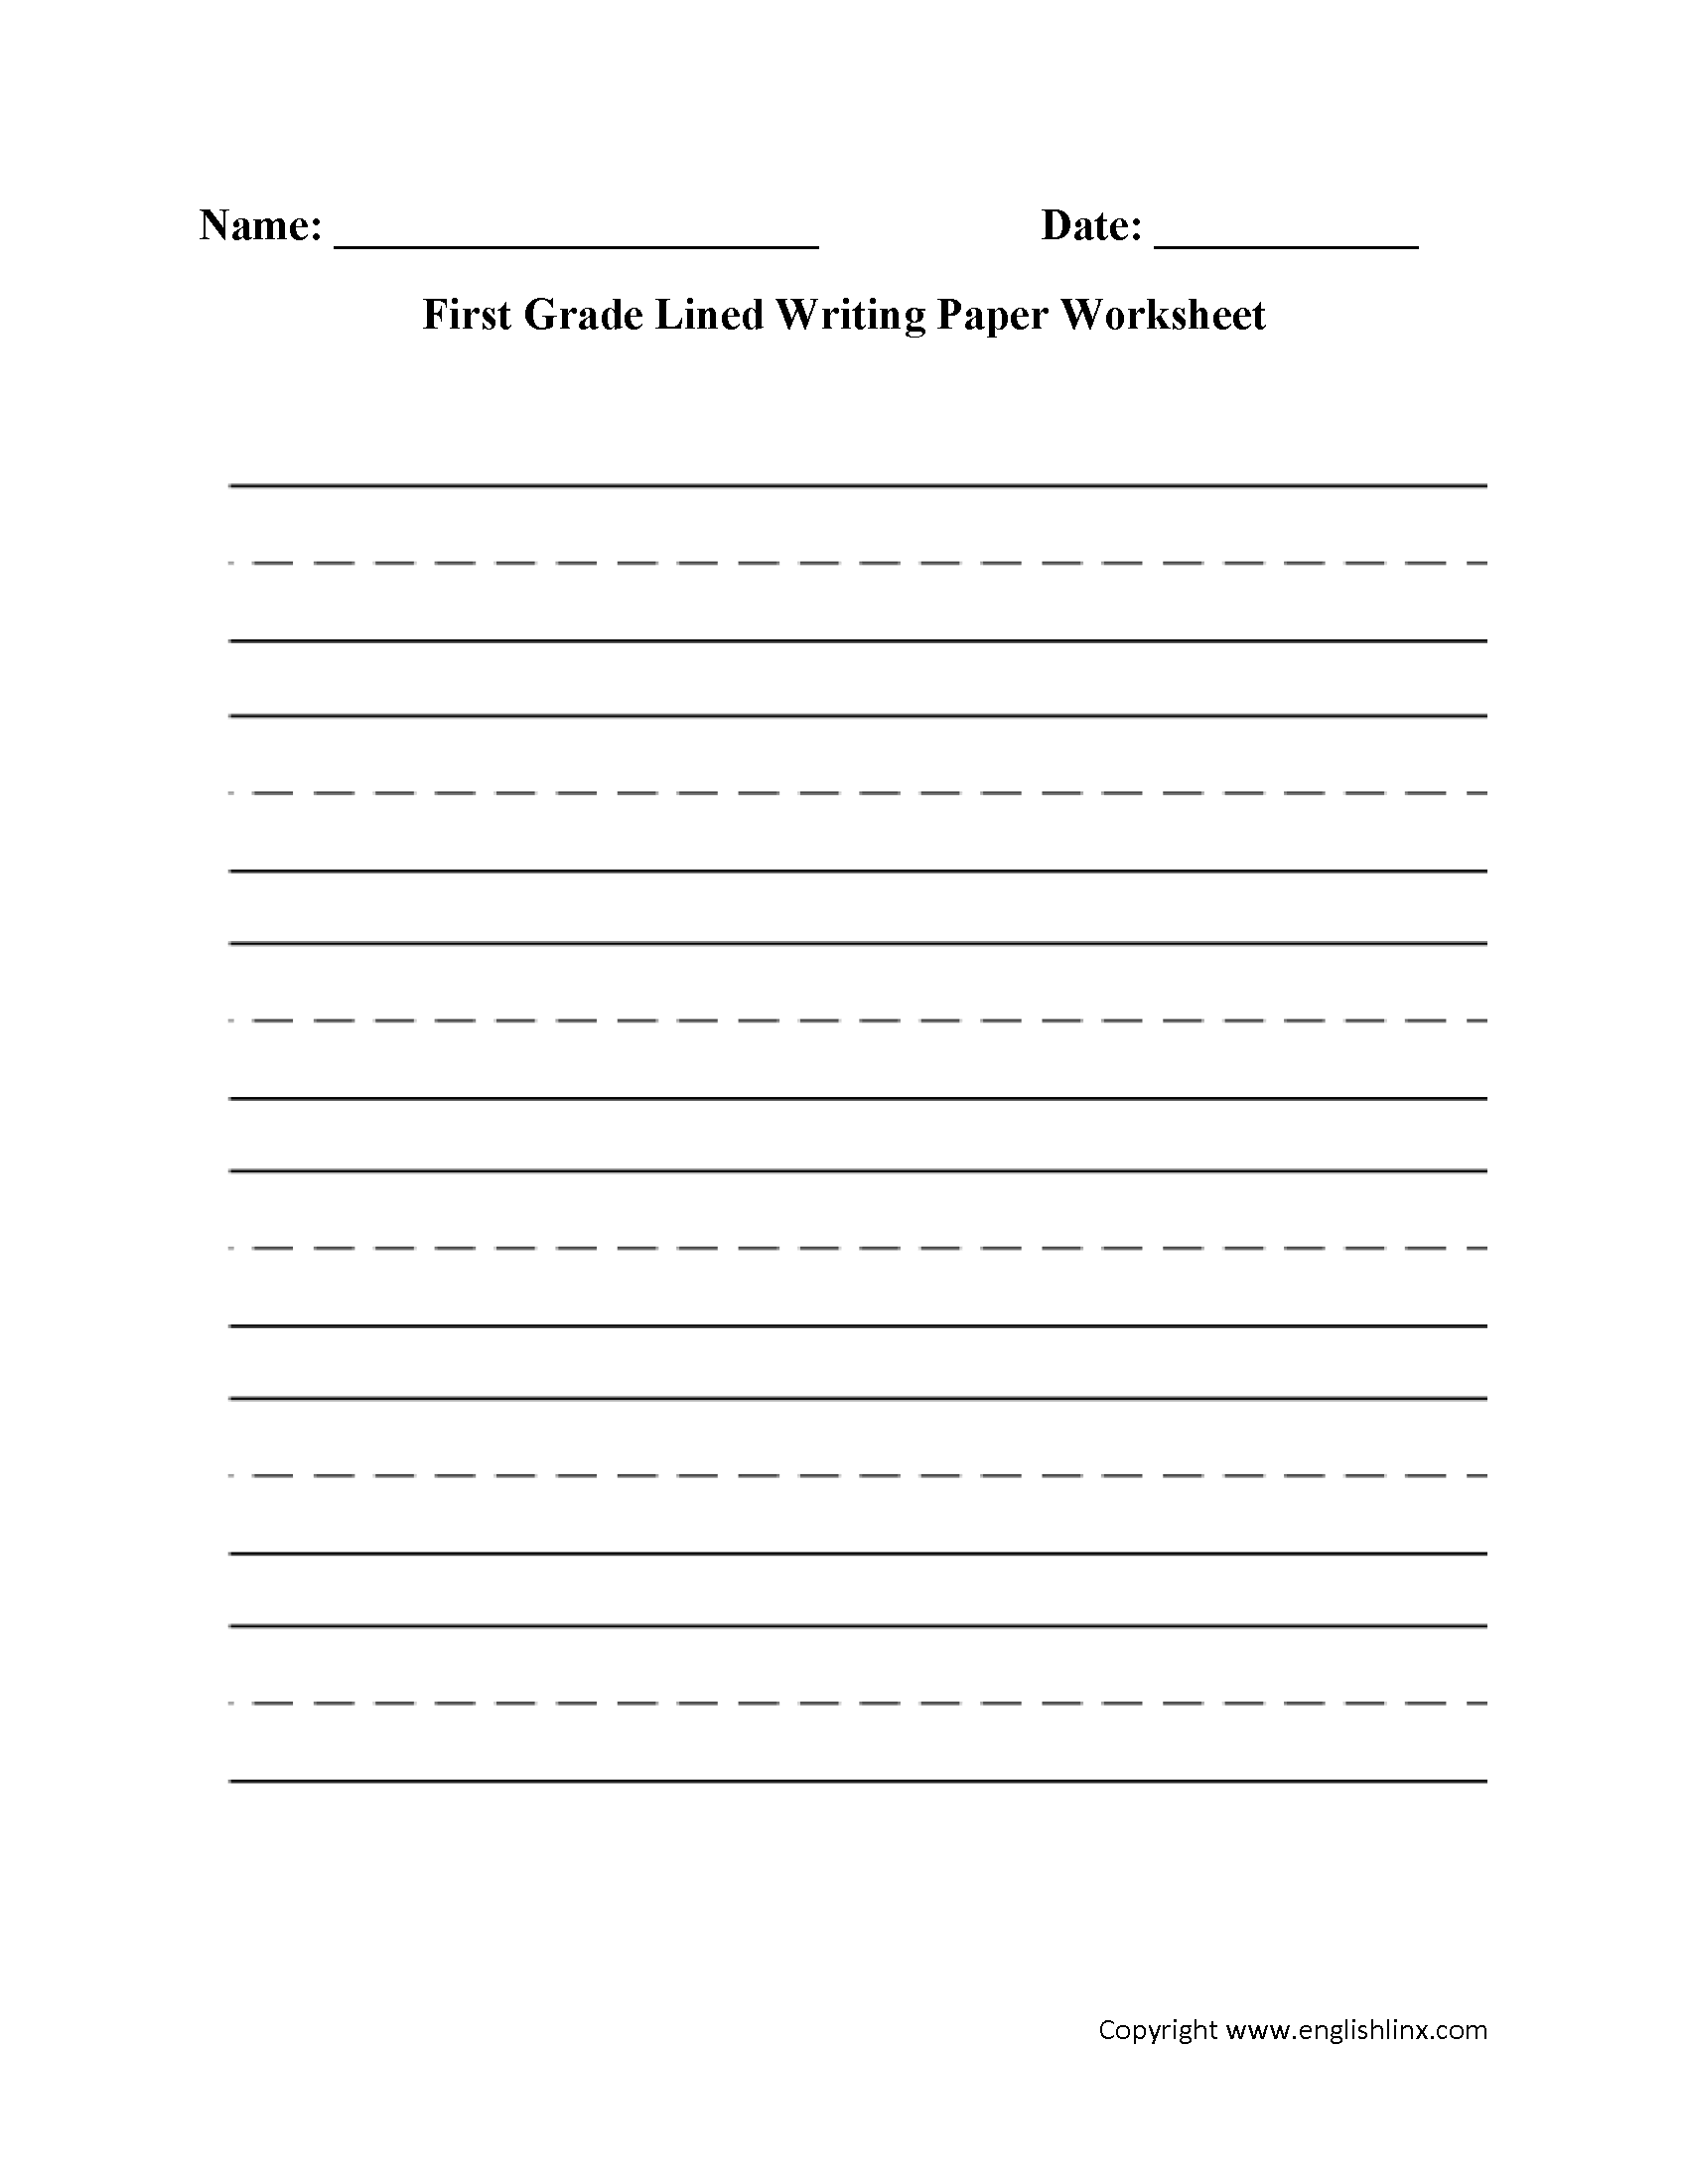 Worksheets Writing Worksheets For First Grade writing worksheets lined paper worksheets